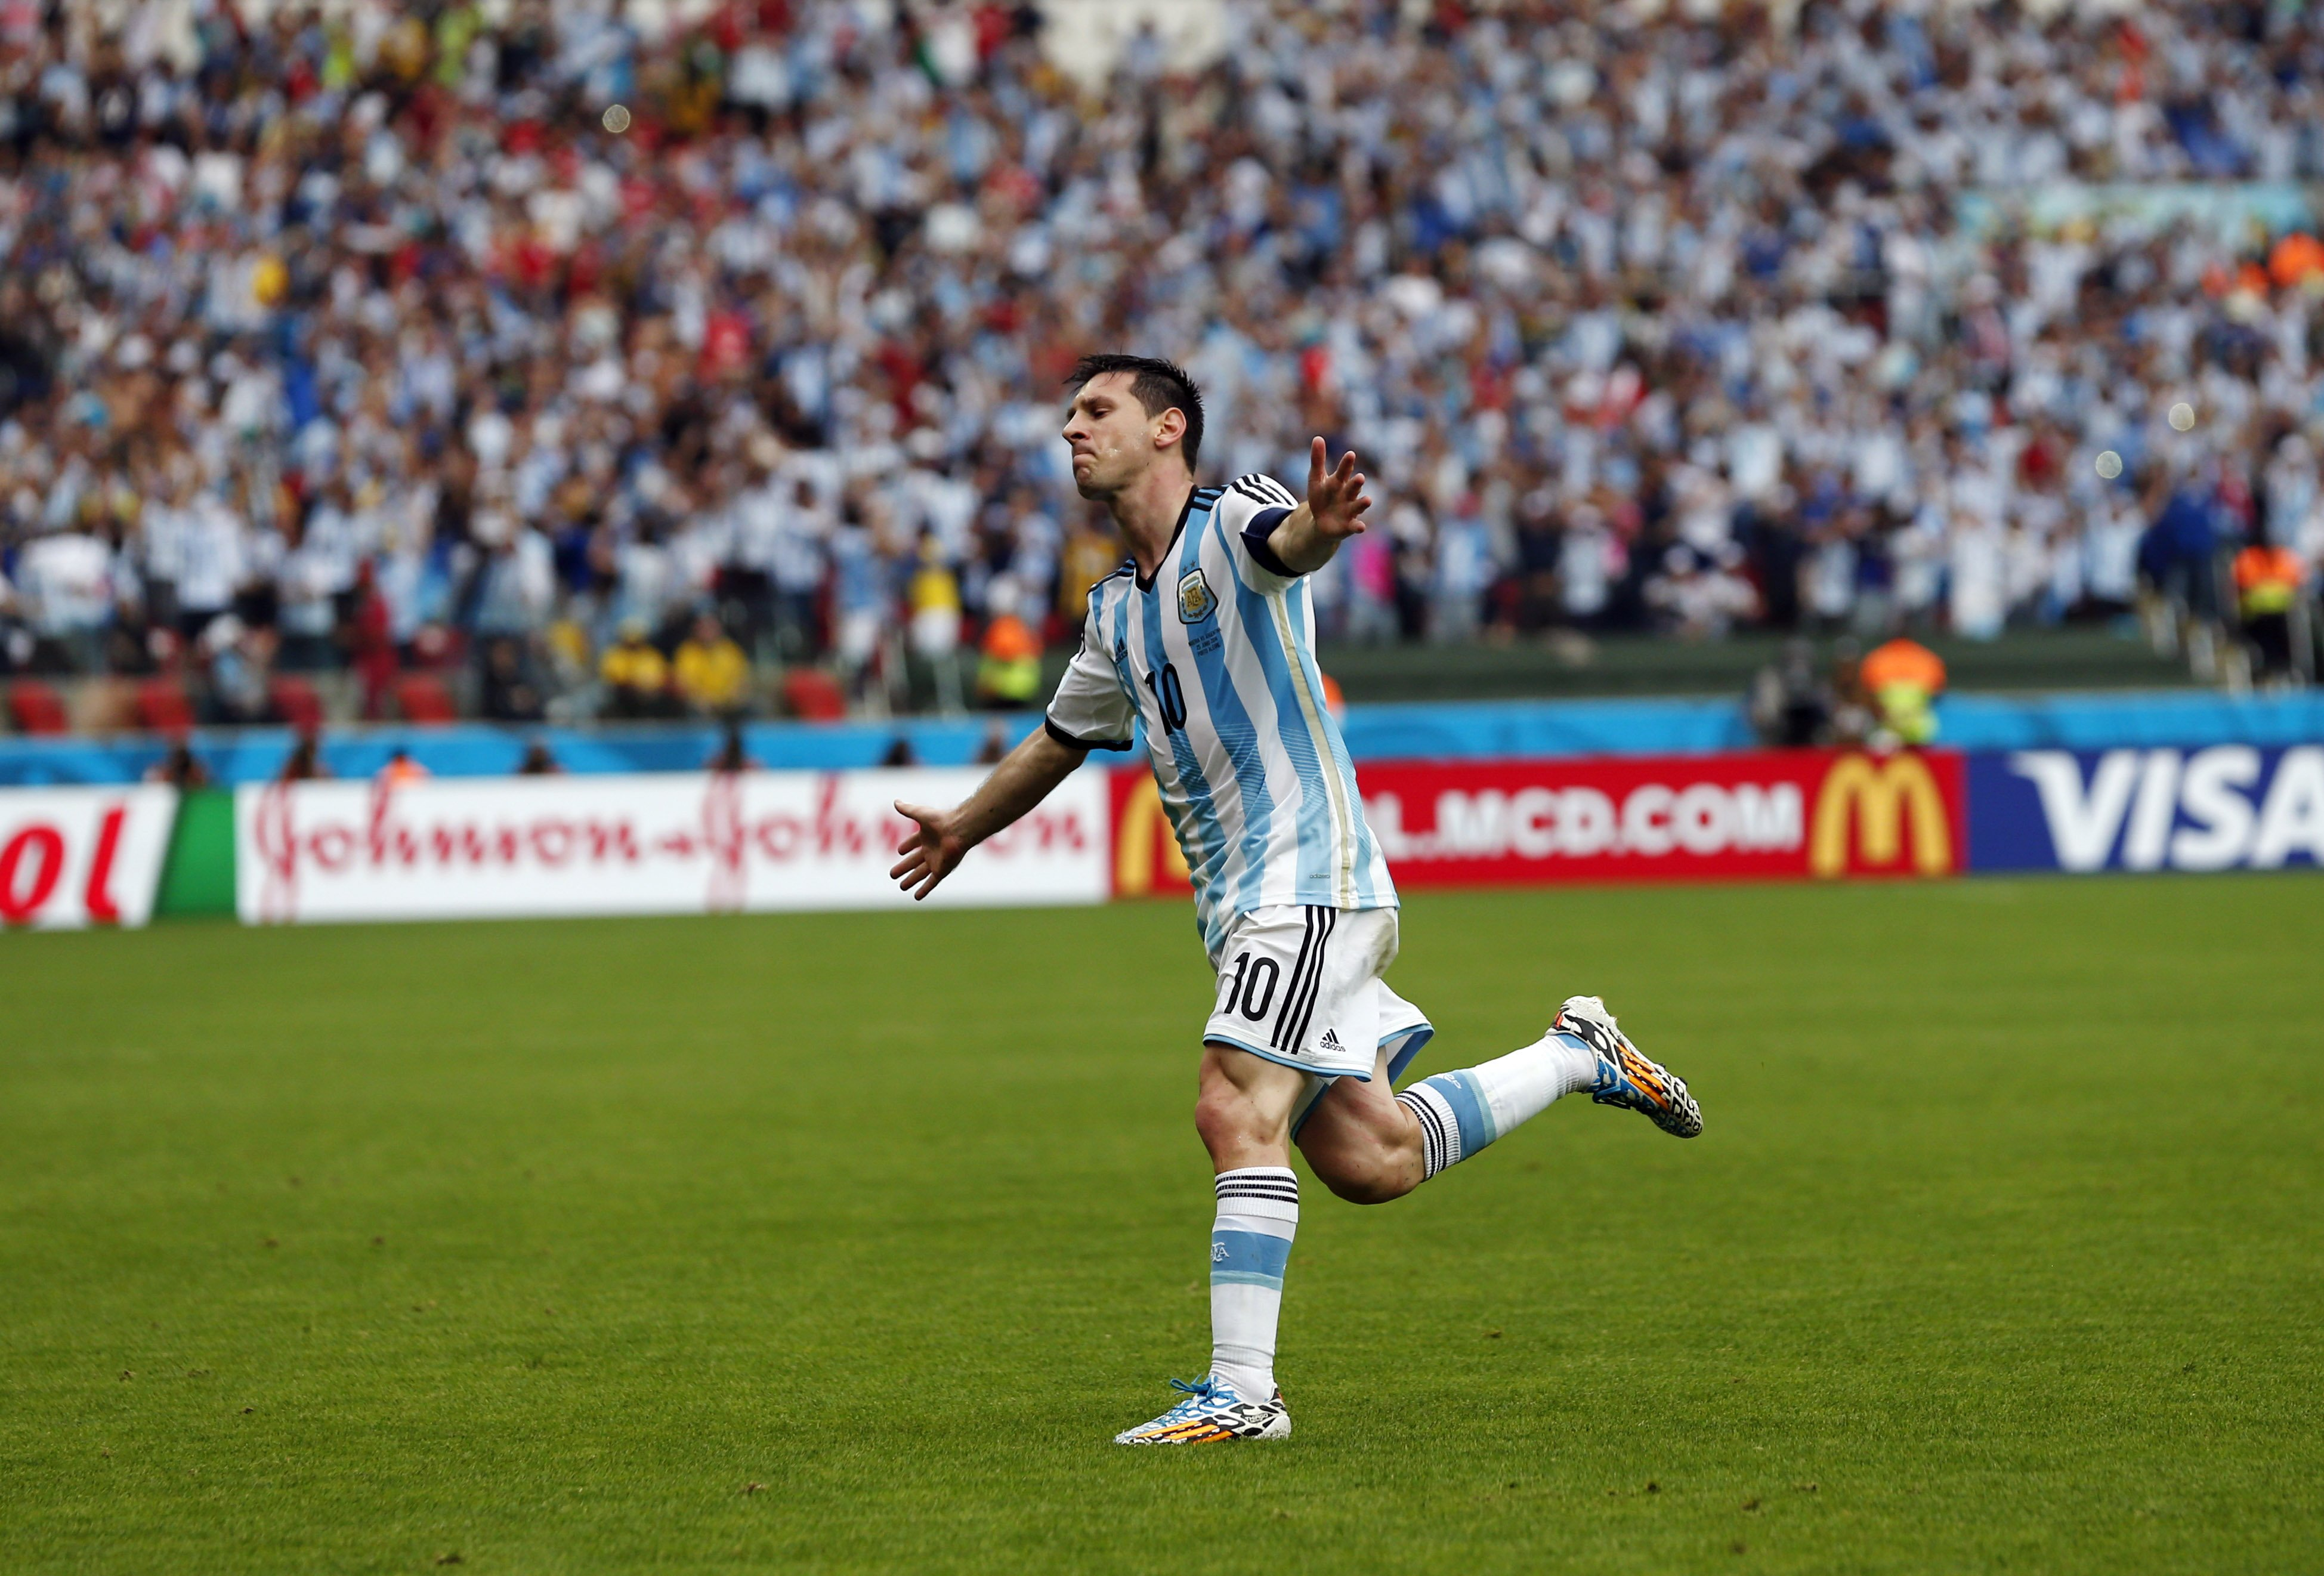 Argentina's Lionel Messi celebrates after scoring his side's second goal during the group F World Cup soccer match against Argentina at the Estadio Beira-Rio in Porto Alegre, Brazil, on June 25, 2014.